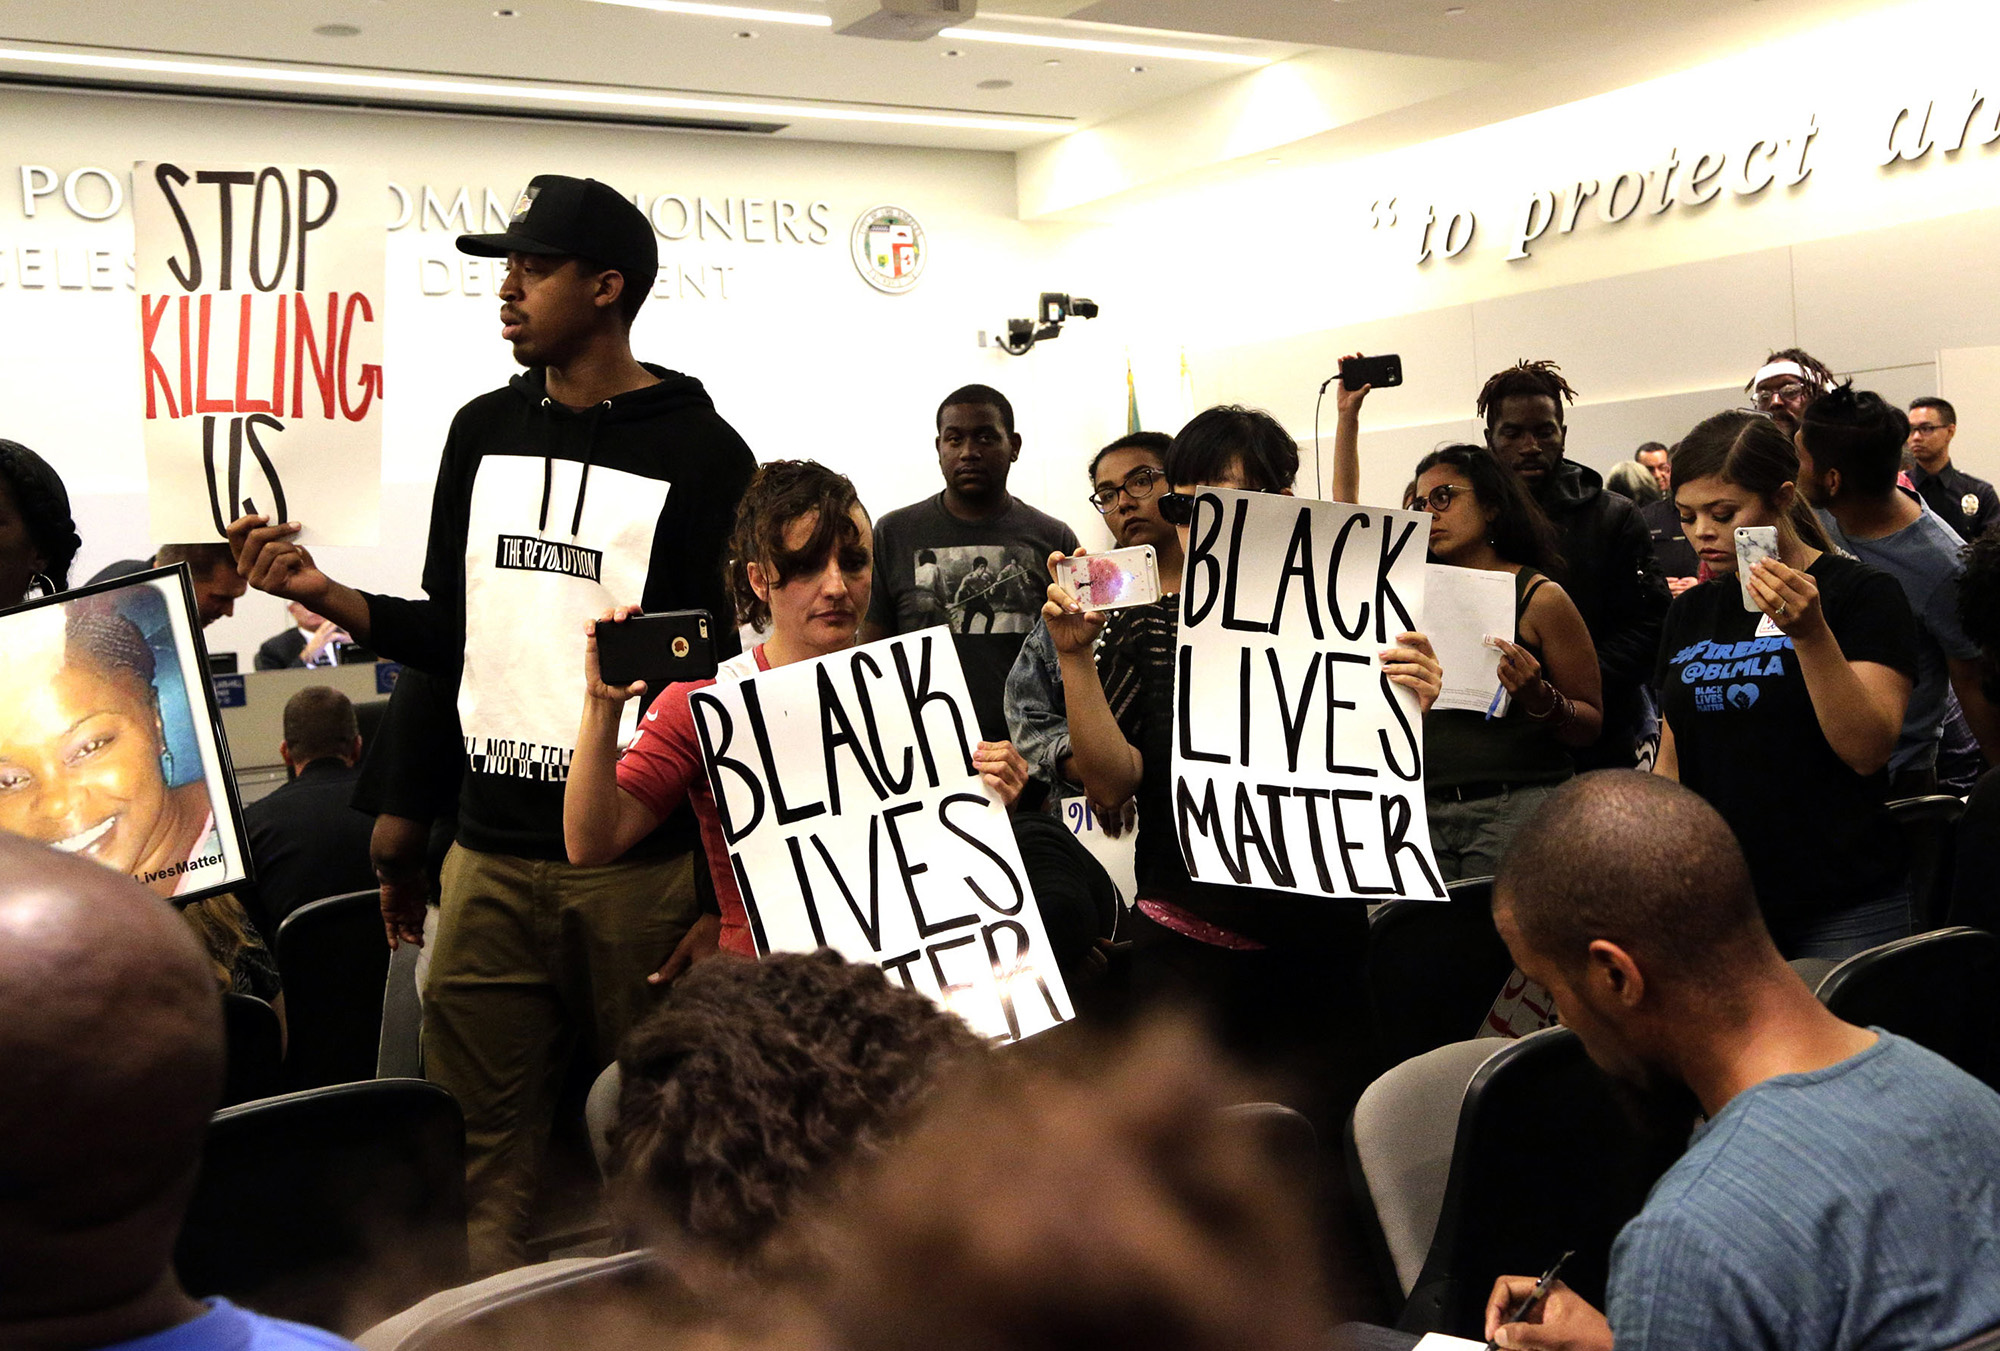 Black Lives Matter protesters demonstrate inside the board of Police Commissioners meeting in Los Angeles on Tuesday, Oct. 4, 2016. Los Angeles police released surveillance video Tuesday showing an 18-year-oldblack suspect running from police while holding what appears to be a gun in his left hand just before he was fatally shot by officers in a death that has generated rowdy protests. (Nick Ut/AP)